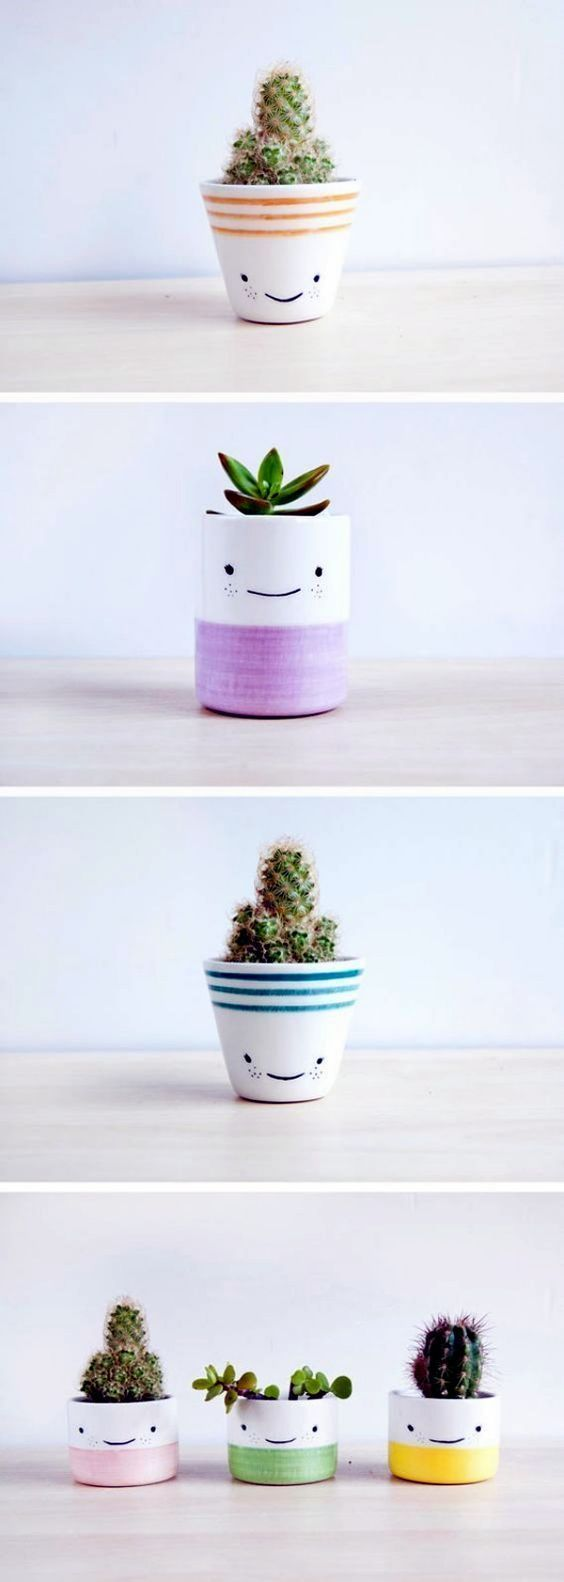 60 Pottery Painting Ideas to Try This Year is part of Succulents diy, Plants, Diy garden, Flower pots, Pottery painting, Succulents - As you can see, there are plenty of pottery painting ideas waiting for you out there once you decide to take it up  The simple and logical thing to do would